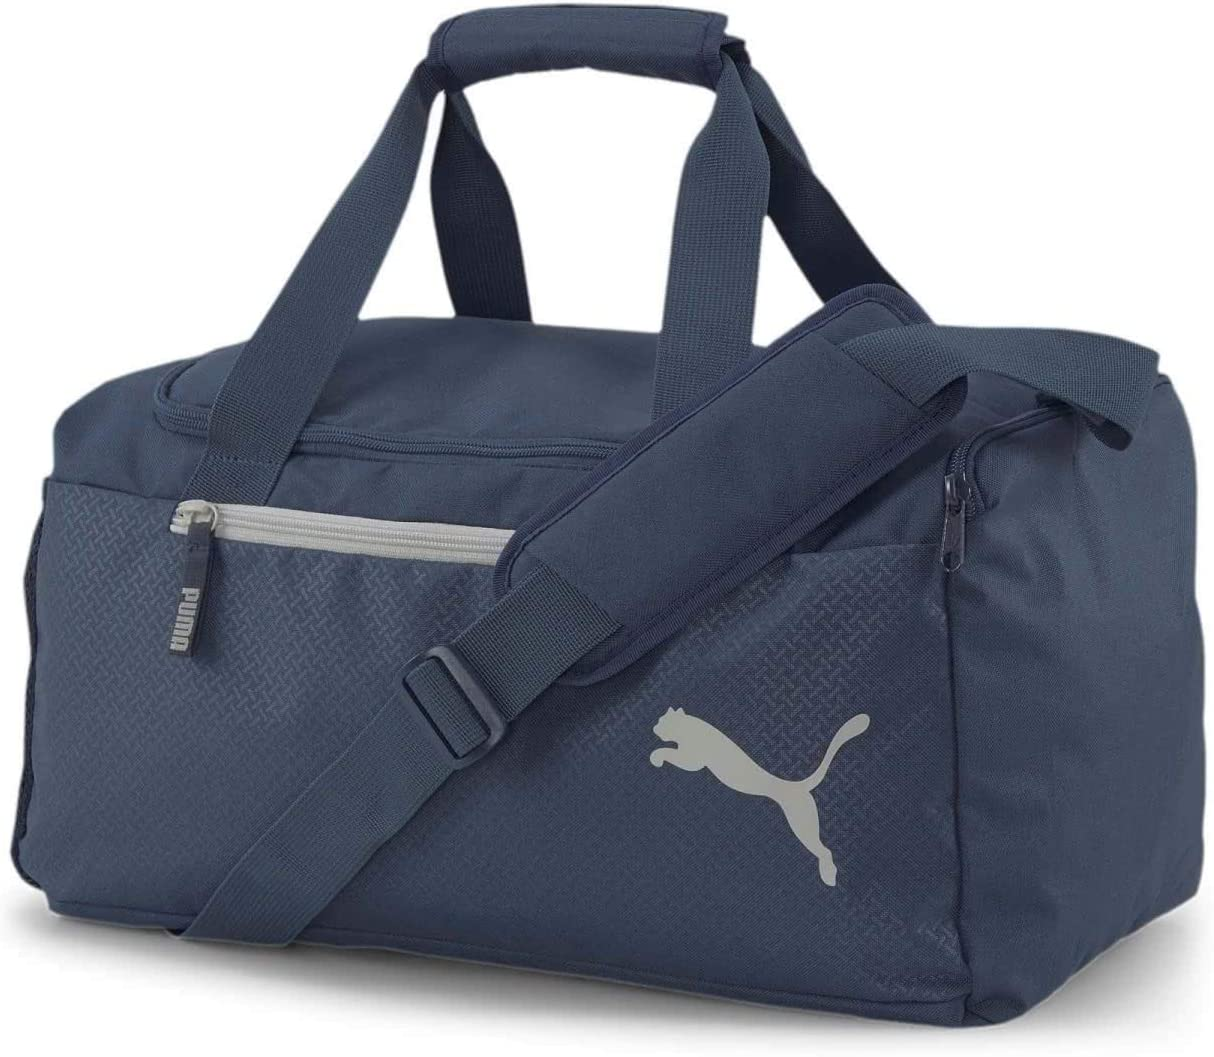 PUMA Fundamentals Sports Bag M Sporttasche Tasche Dark Denim